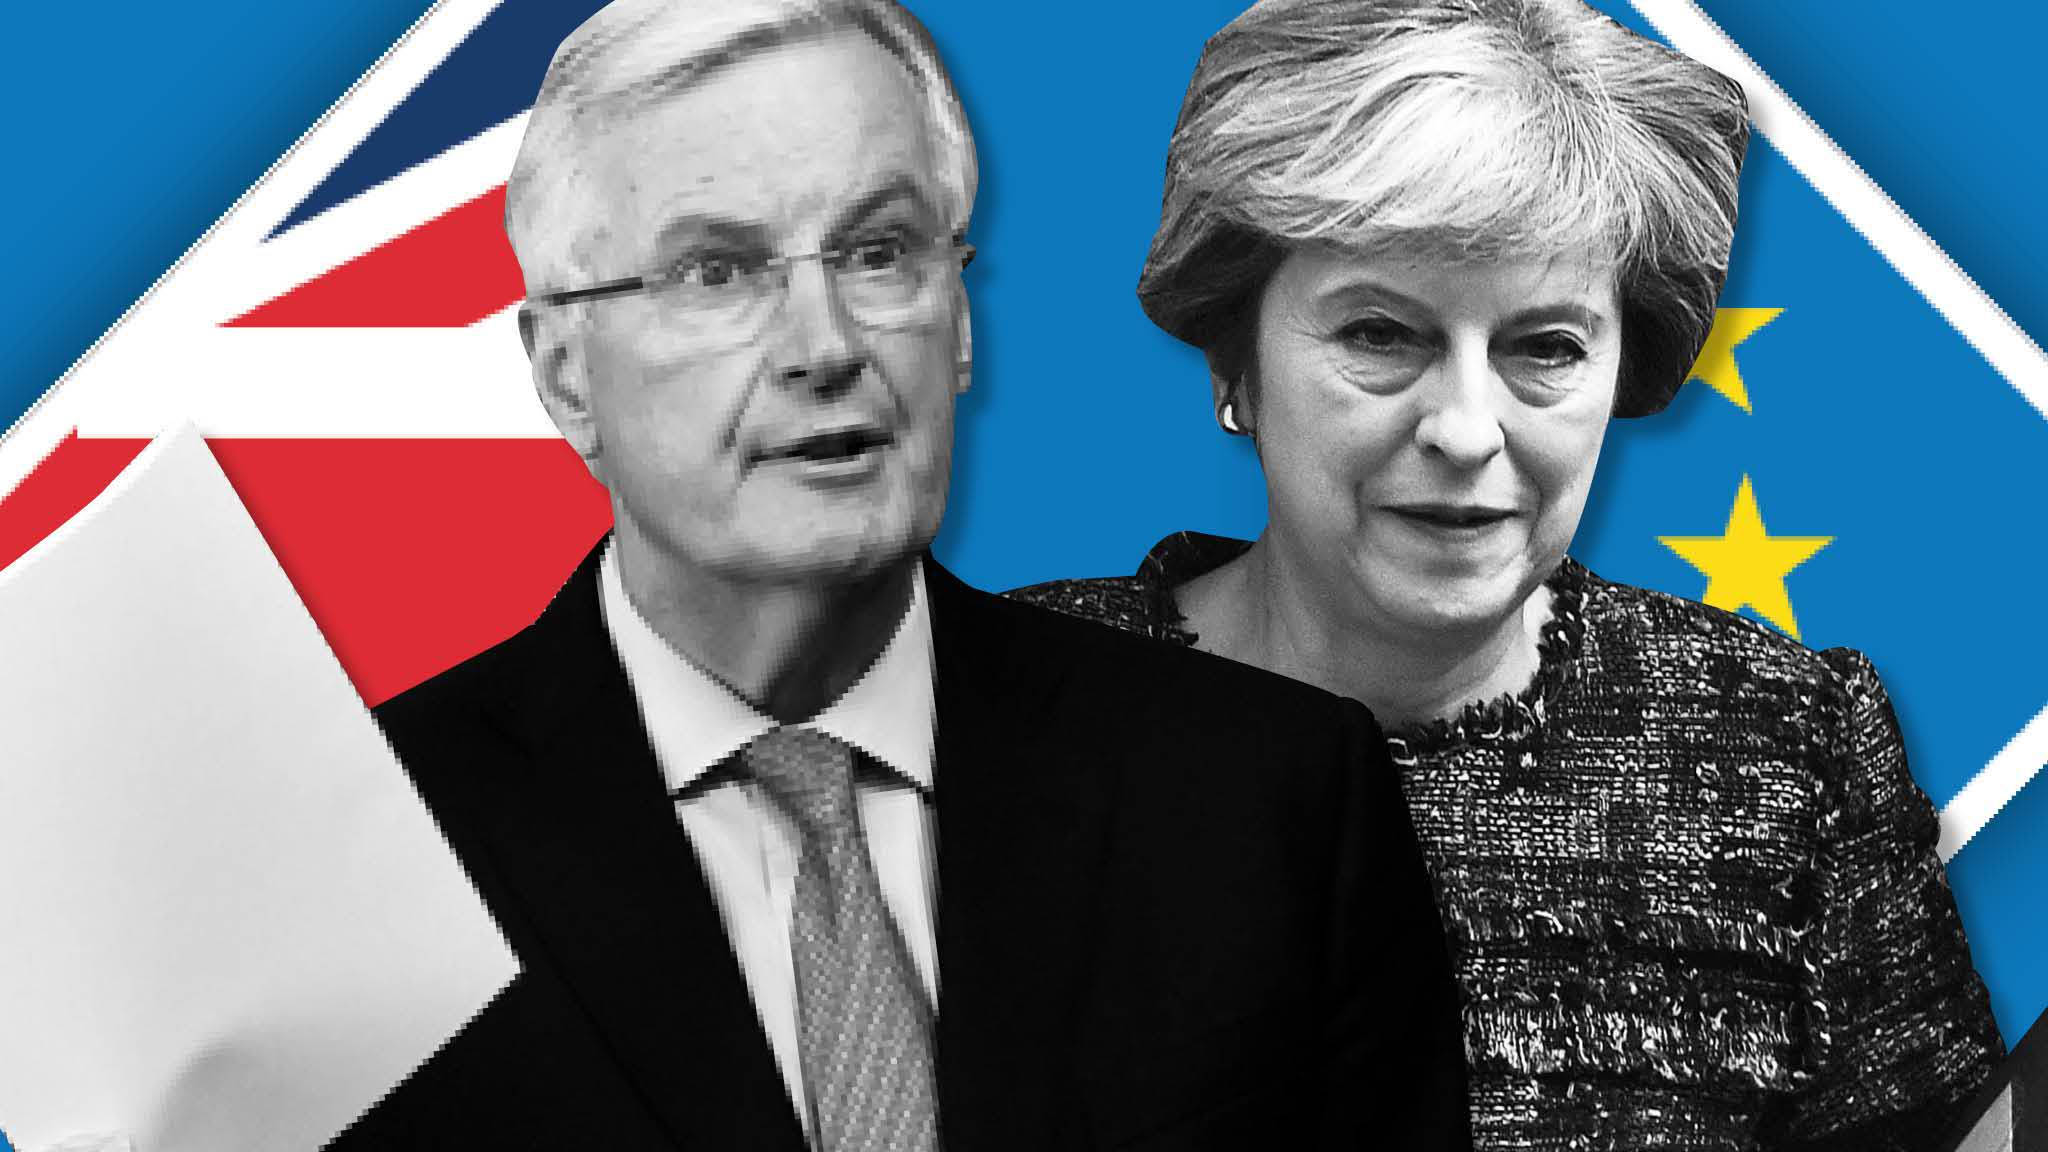 With a Brexit deal in sight, Britain is entering a no man's land